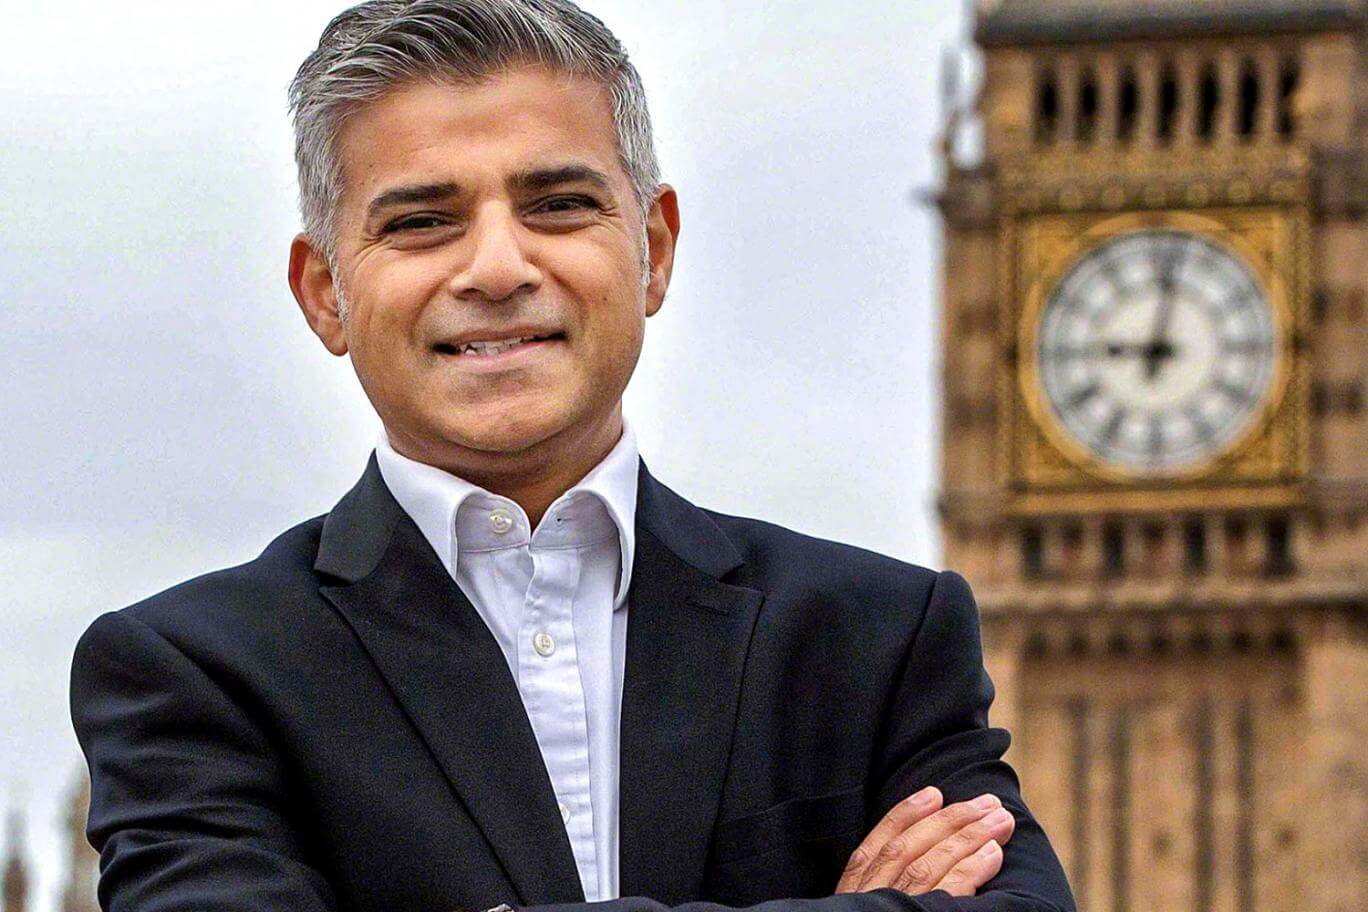 FLASHBACK: London Mayor claimed terror attacks 'part and parcel' of living in big city (VIDEO) – True Pundit